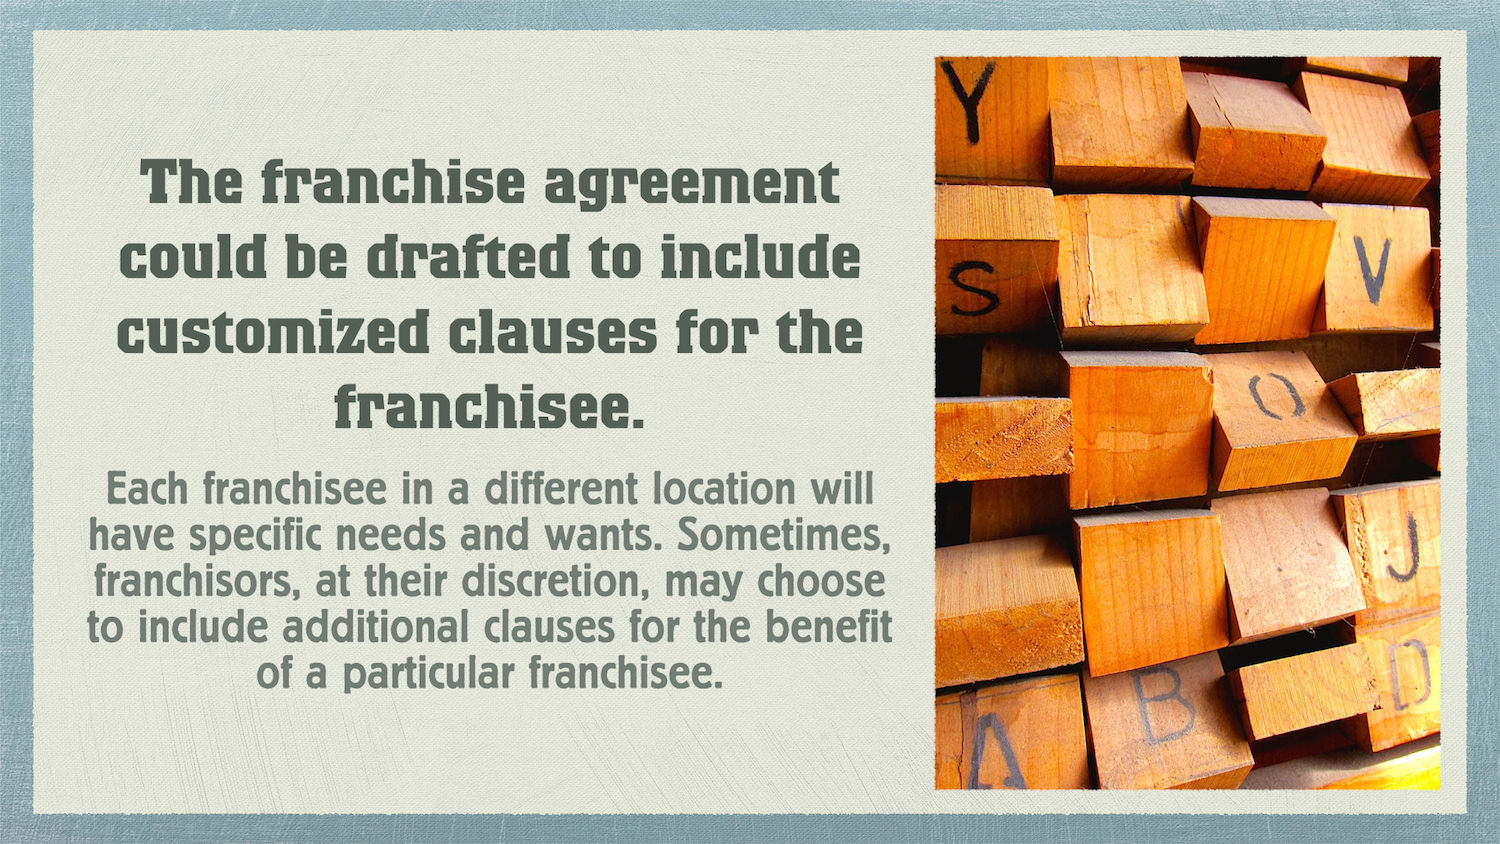 keynote-10-facts-about-franchising.003.jpg